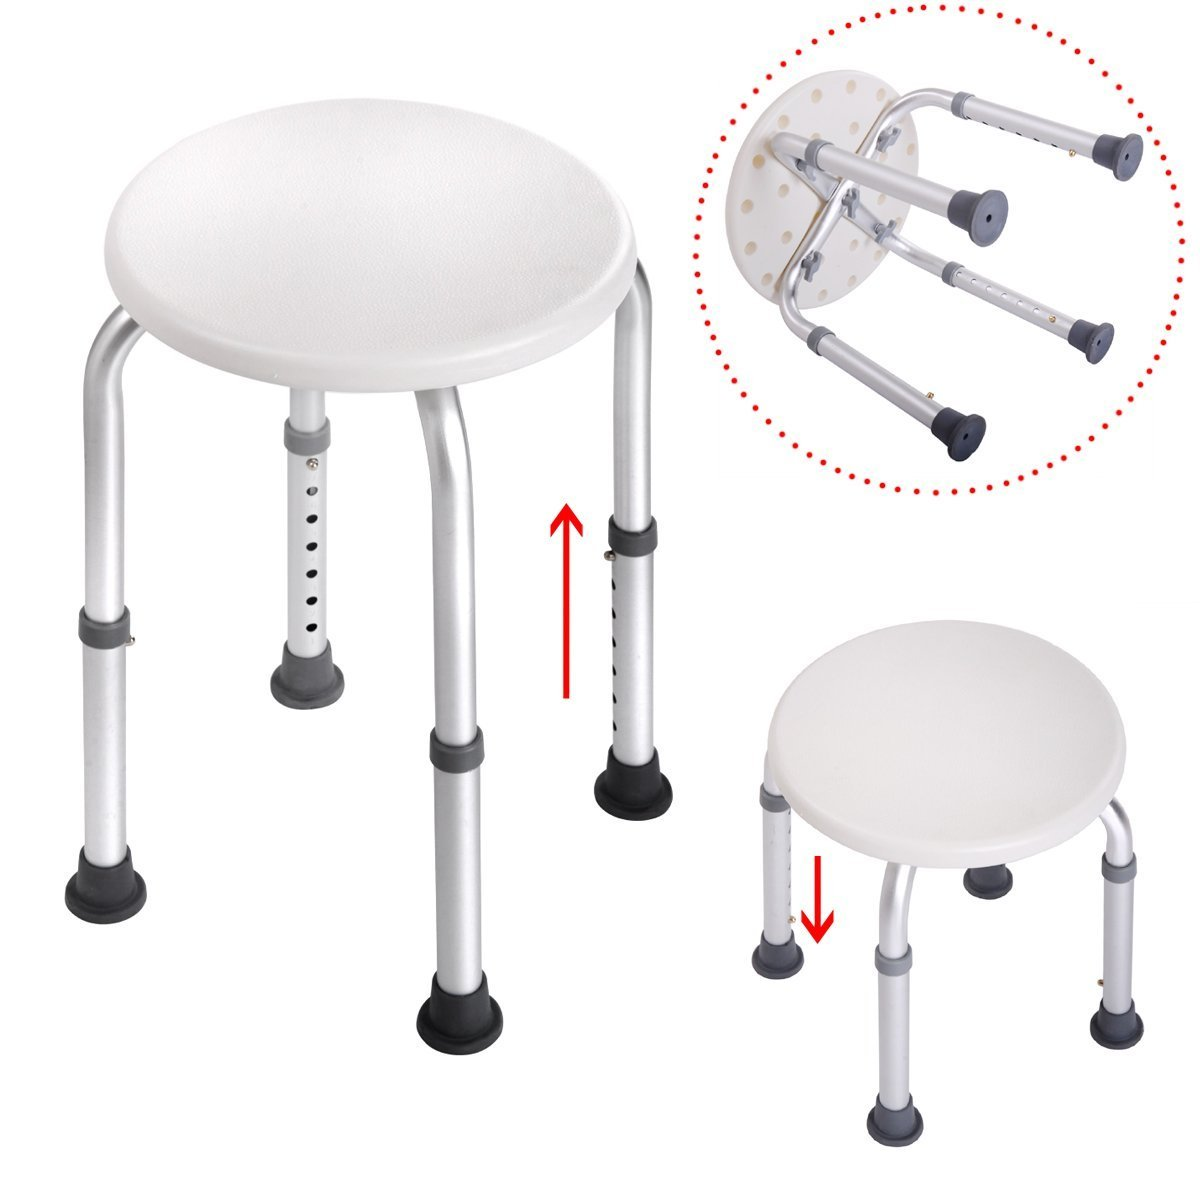 Tezam Medical Adjustable Height Bath Stool, White Round Shower Stool Bathtub Chair Bench with Non-Slip Rubber Bathroom Safety for Elderly, Senior, Pregnant, Handicap & Disabled